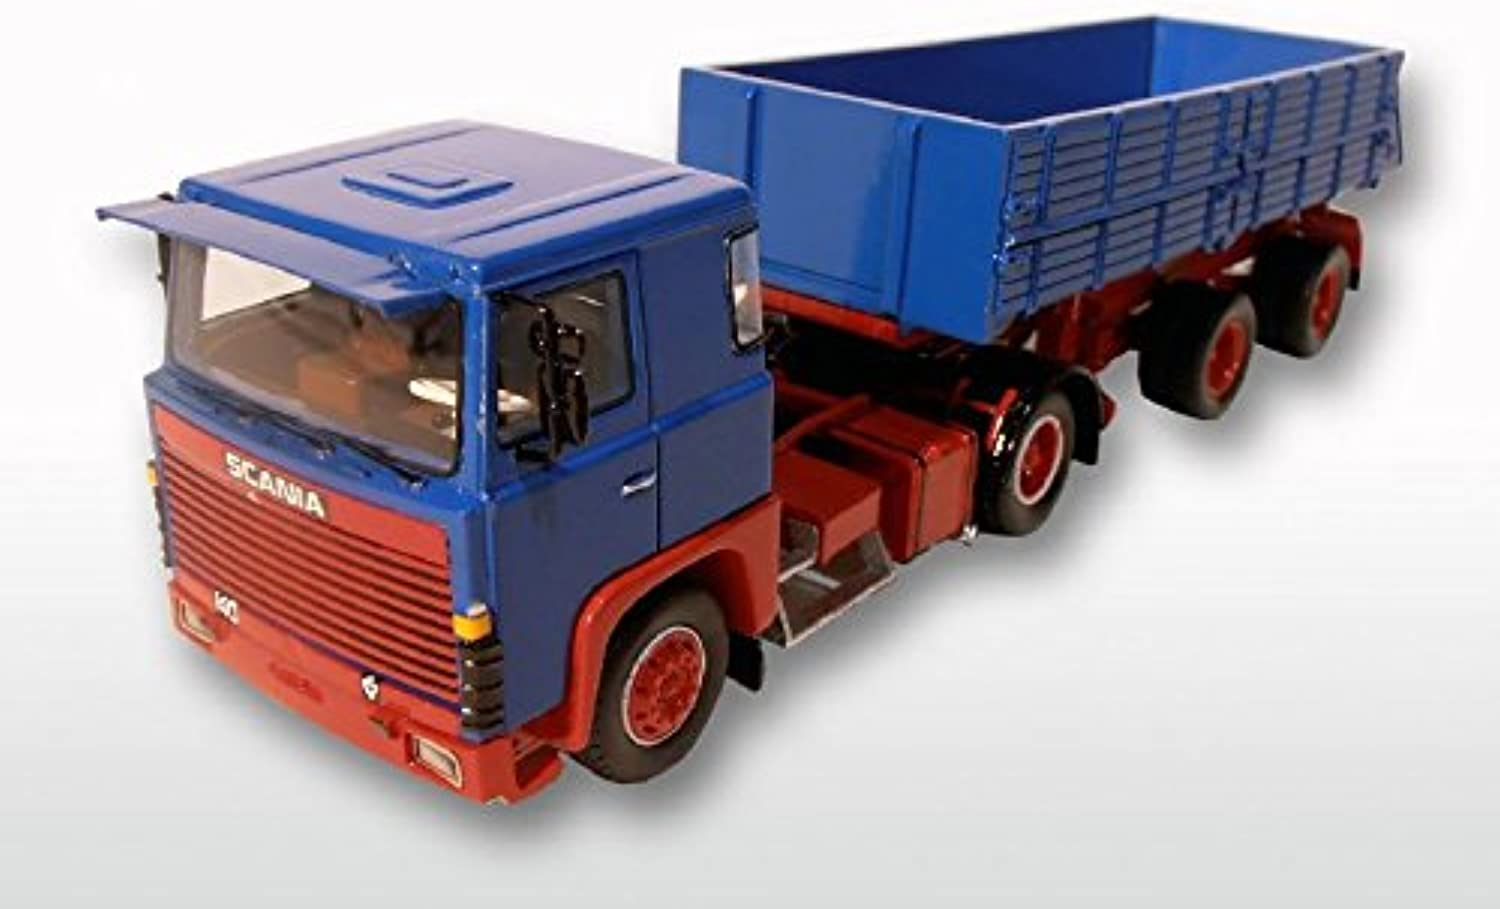 GMTS - G0004741 - Scania S 0 4x2 tipper trailer 1 50, bluee   red, limited Resinmodel